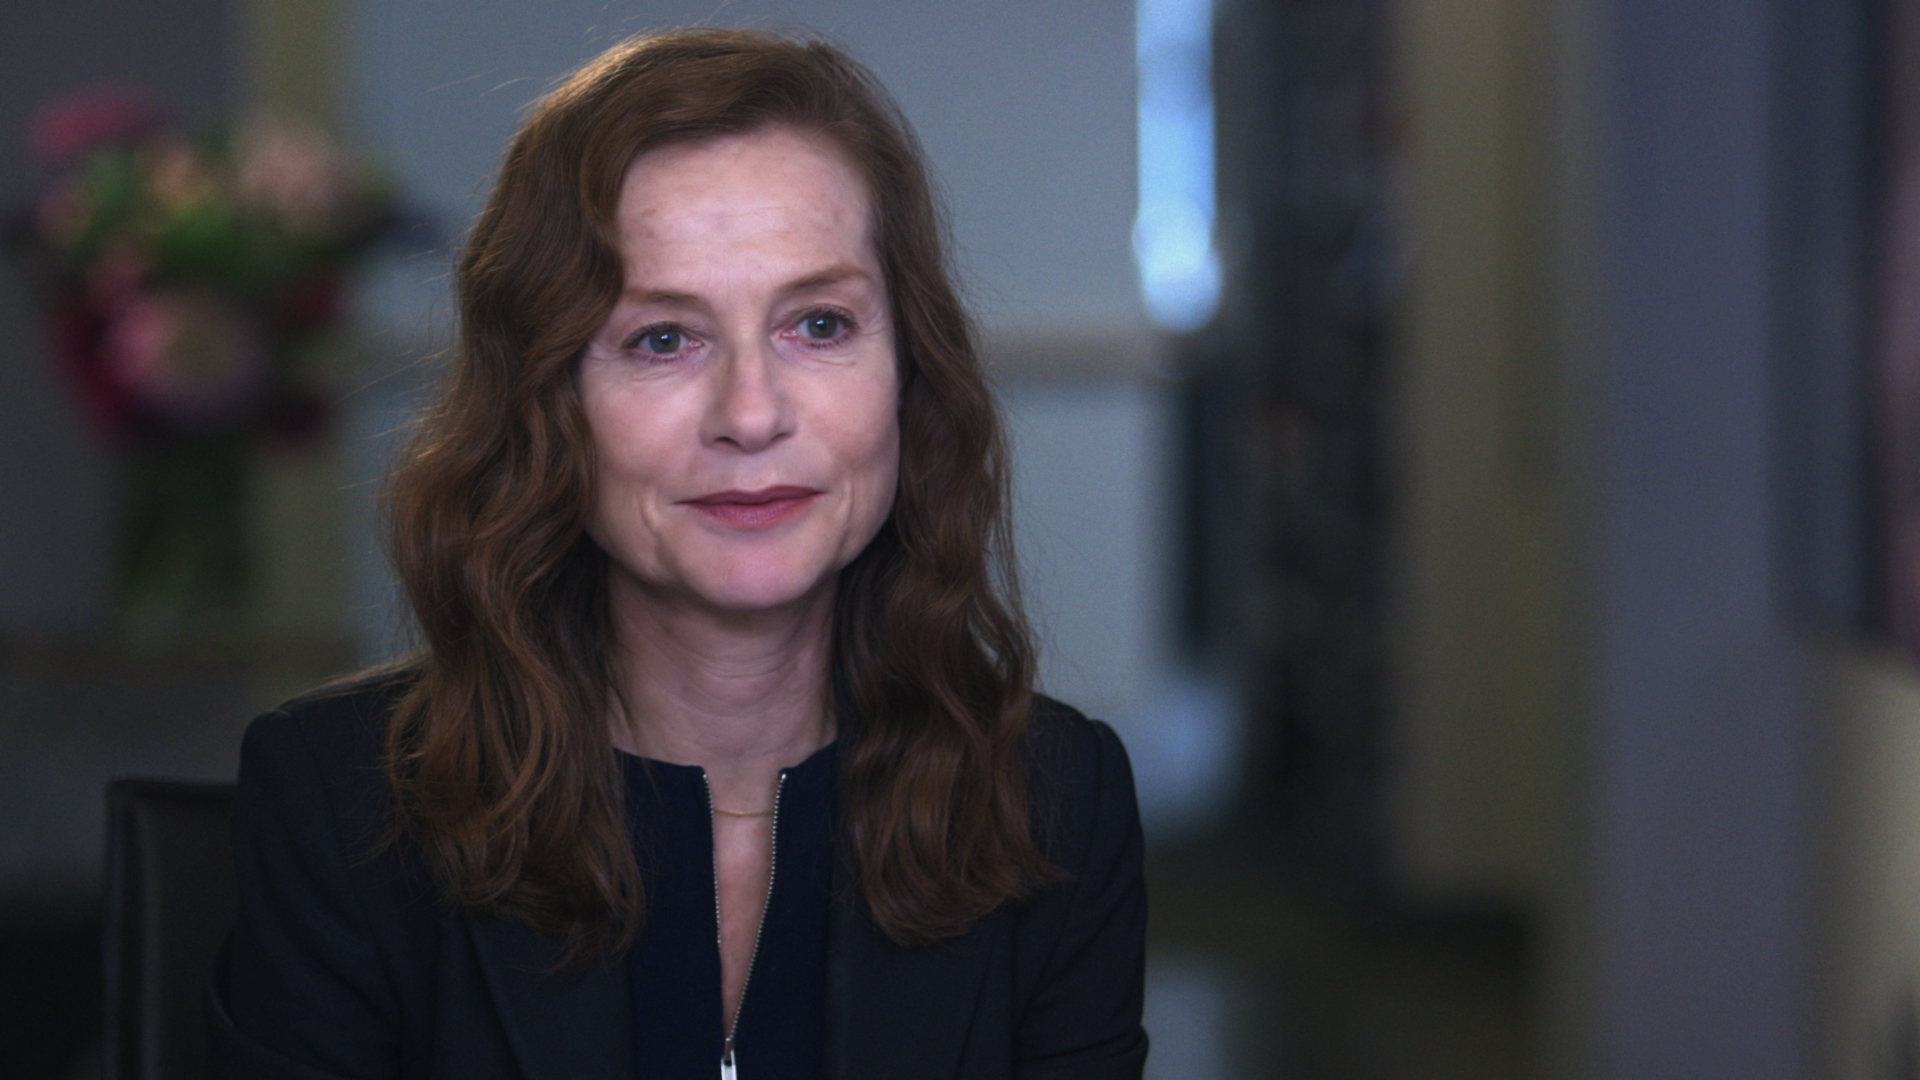 Isabelle Huppert on Jean-Luc Godard